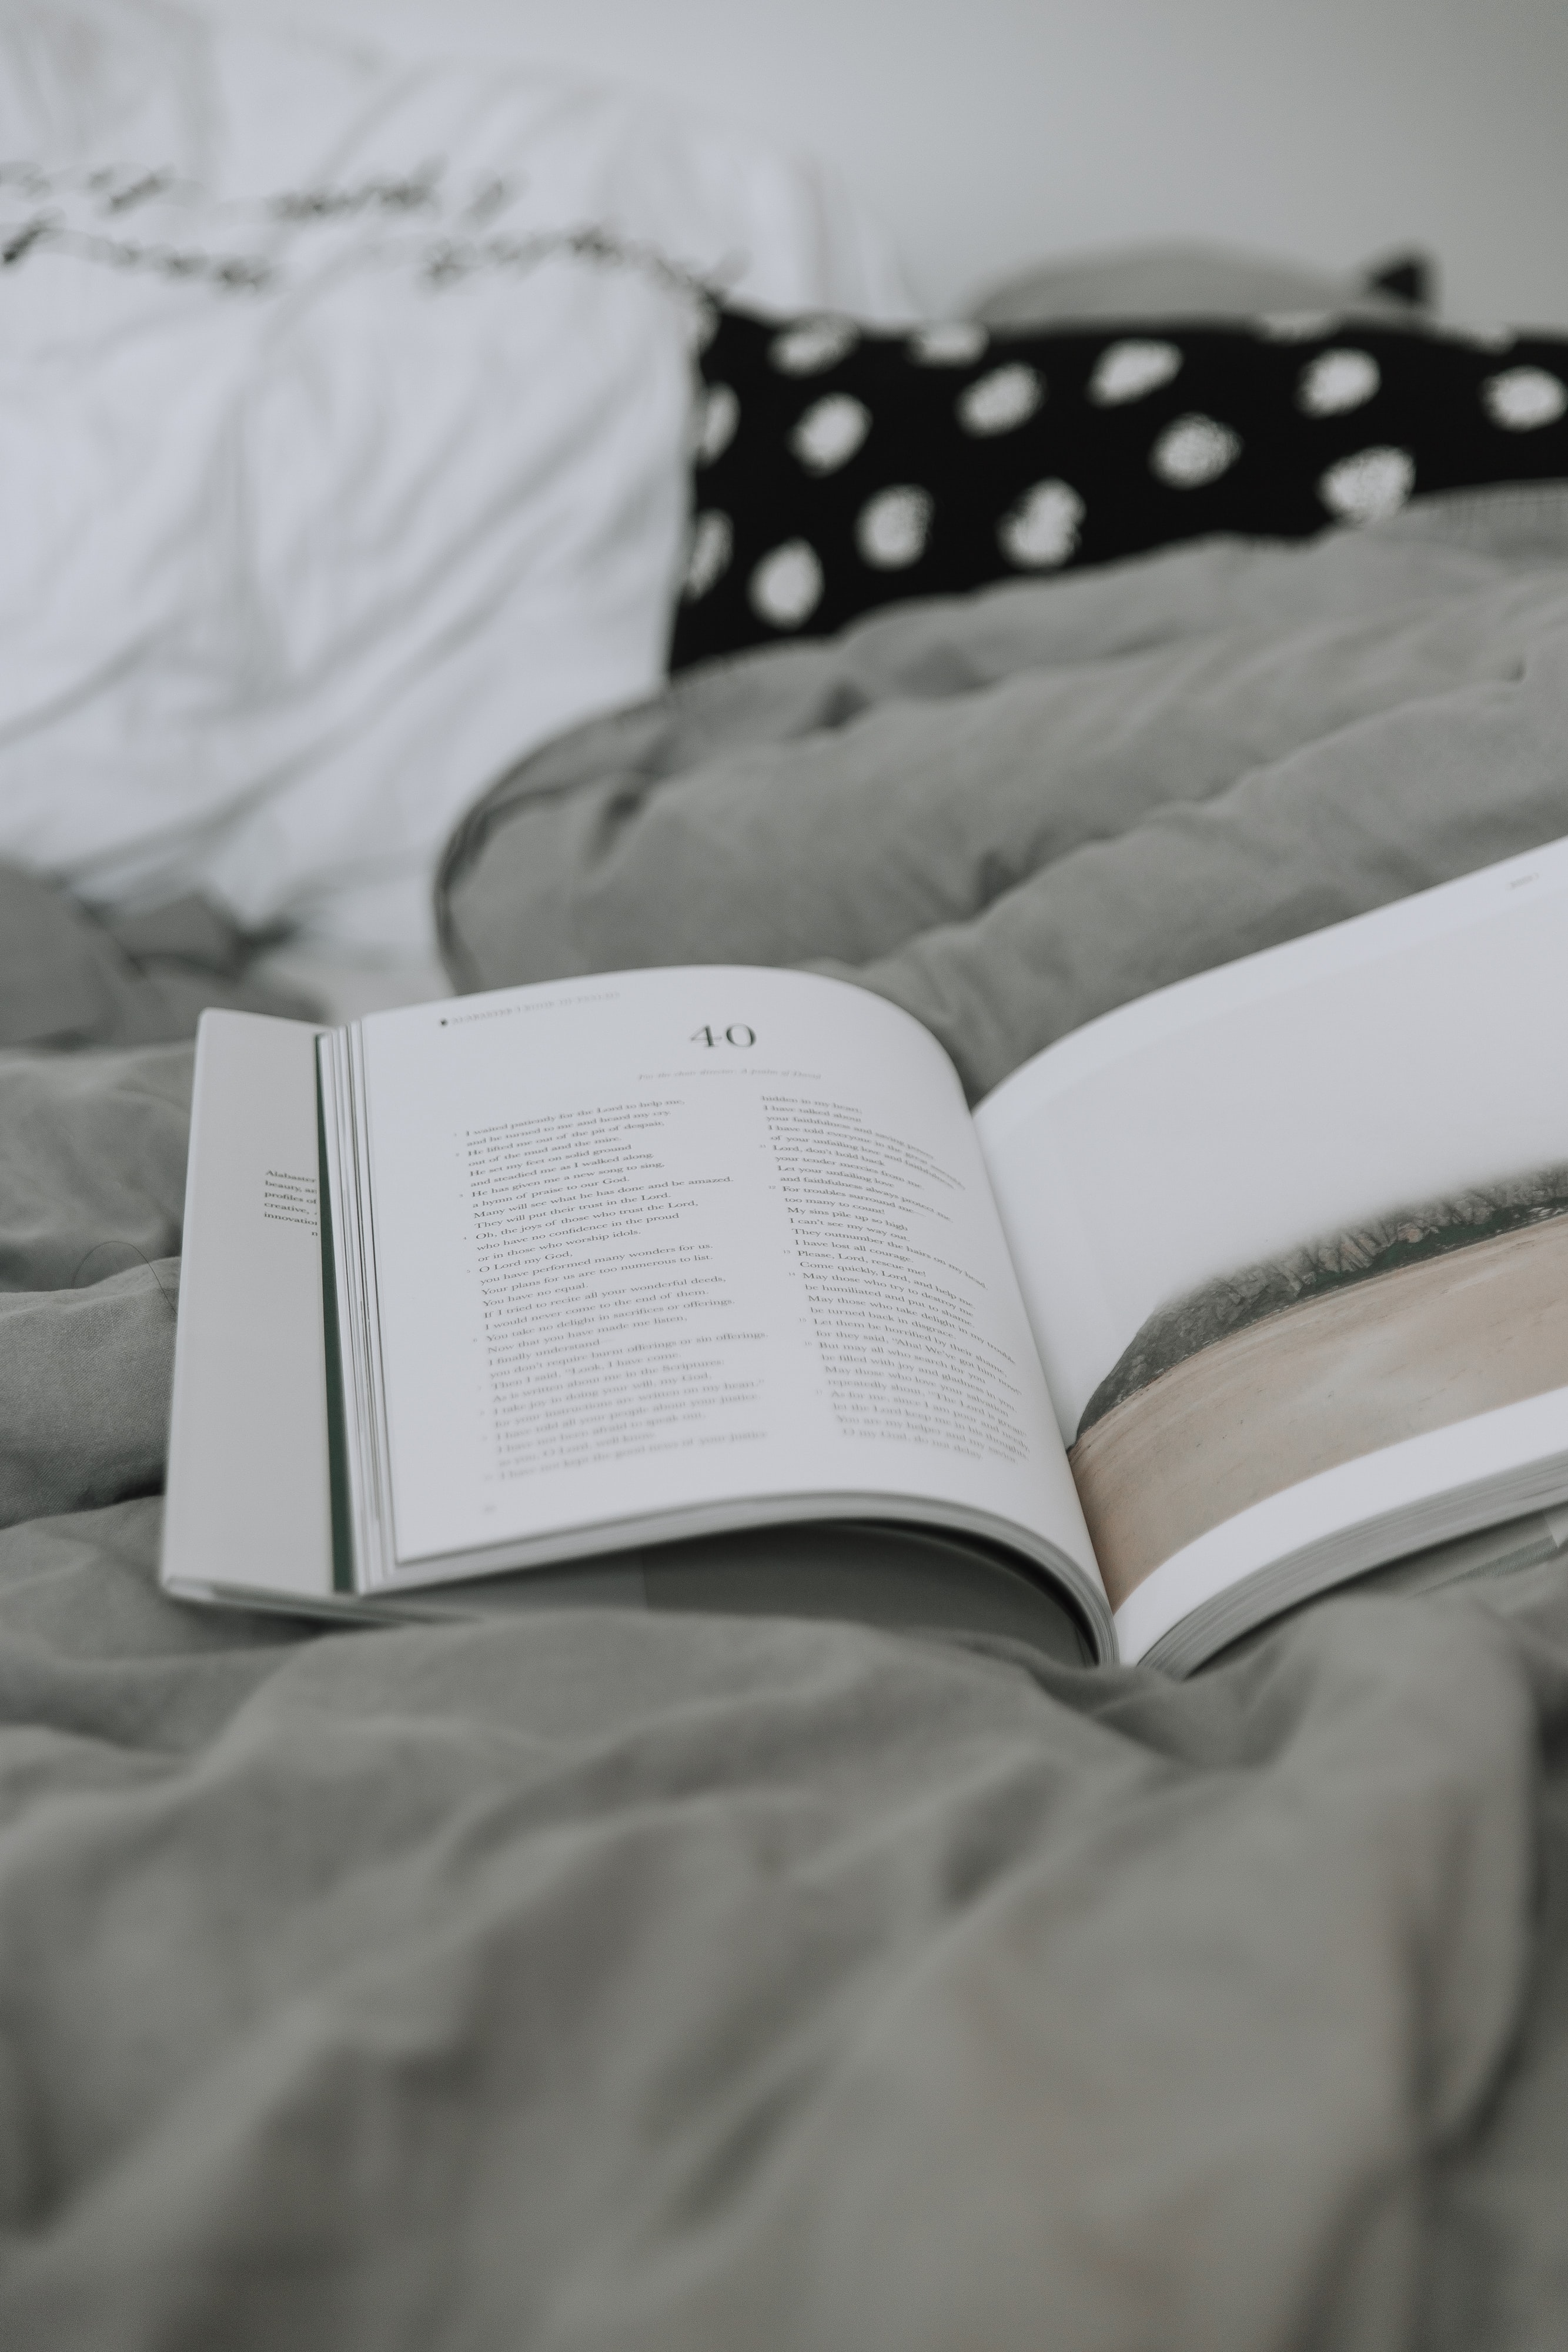 opened book on gray textile